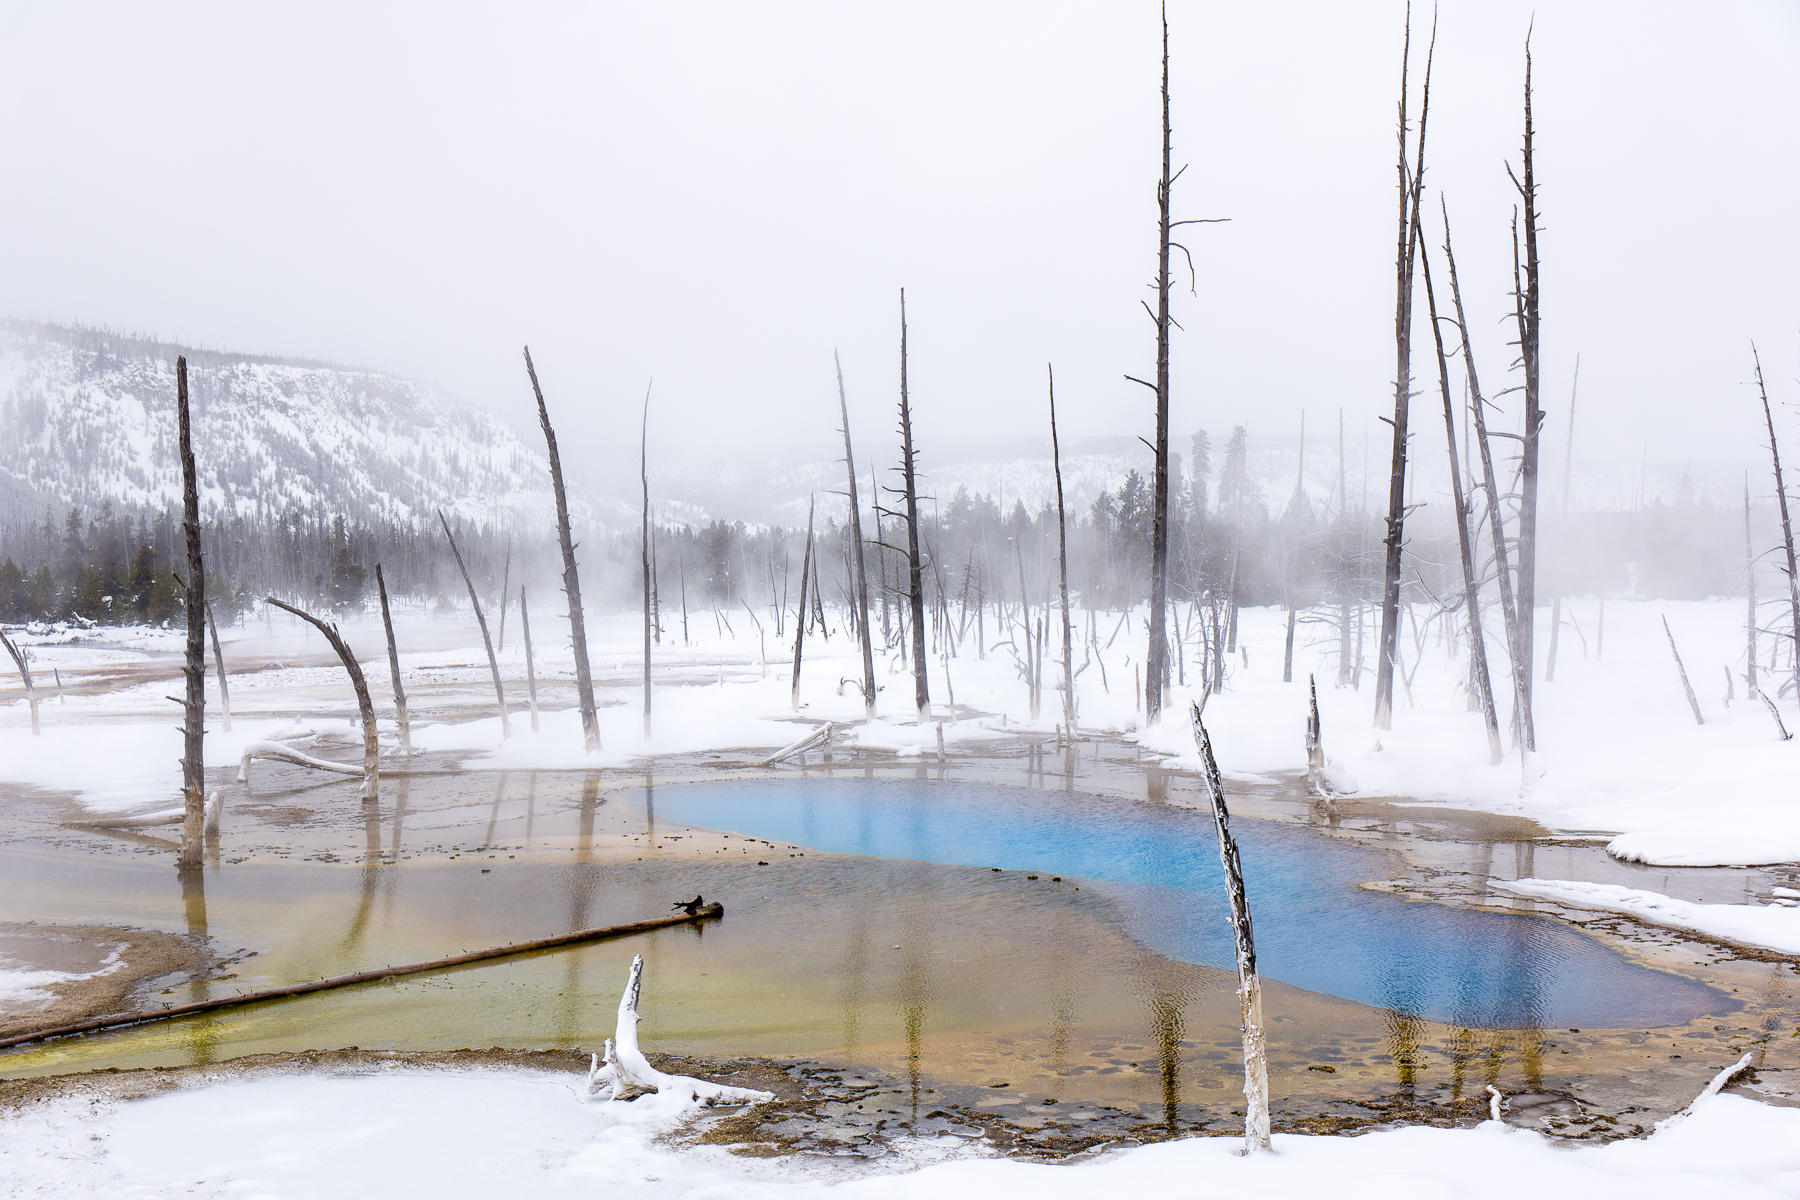 Opalescent Pool, Yellowstone National Park : landscapes : TIMOTHY FLOYD PHOTOGRAPHER, NATURE PHOTOGRAPHY, PHOTO ESSAYS, PHOTOJOURNALISM